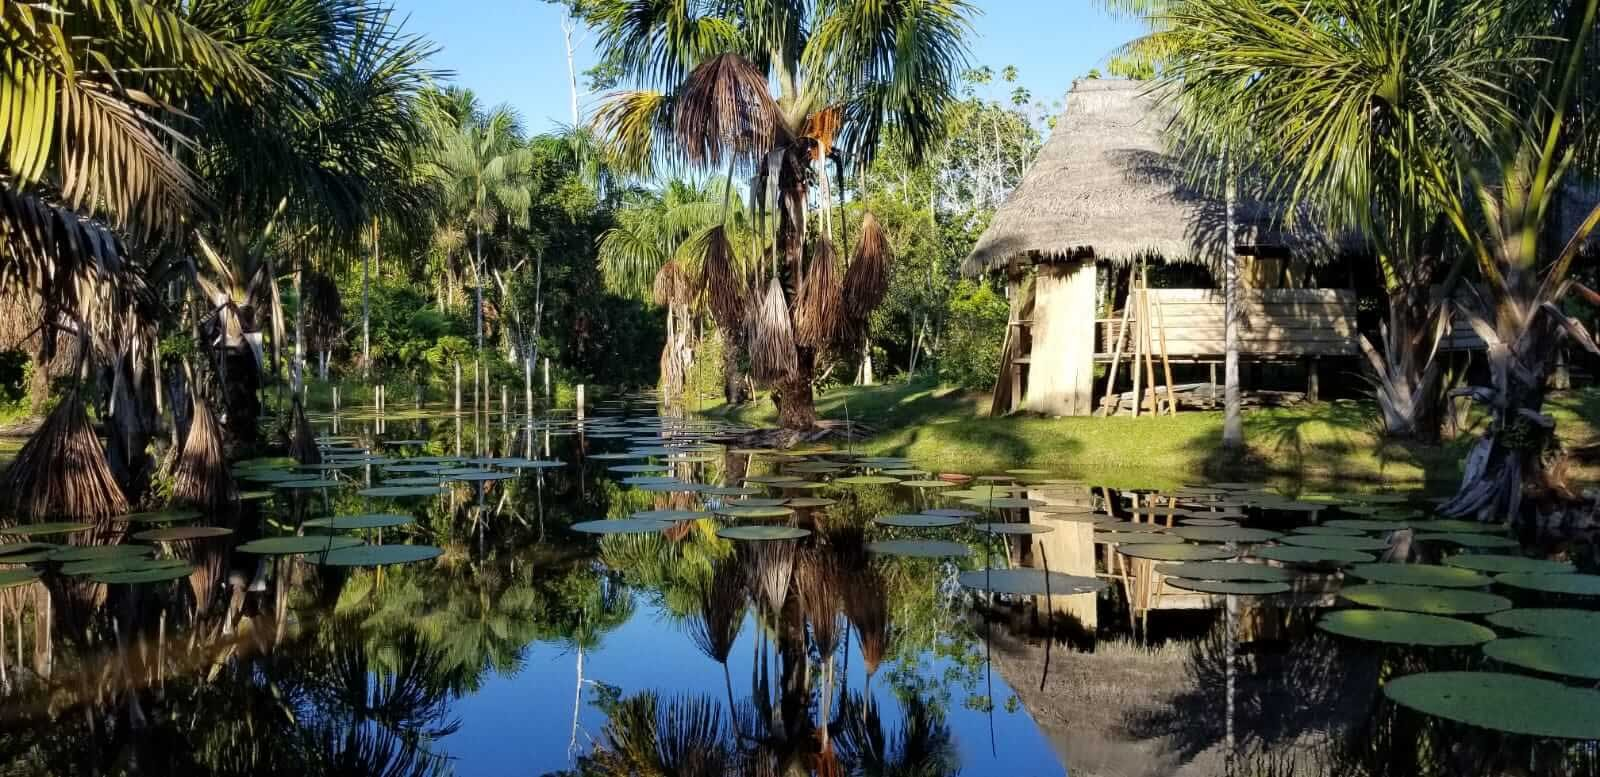 Behold Retreats, a wellness company that specialises in the therapeutic use of plant-based medicine to aid in personal and spiritual growth. Plant medicine, ayahuasca, psychedelics, psilocybin, 5-meo DMT. USA. Peru. Gaia Tree Center Ayahuasca Retreat